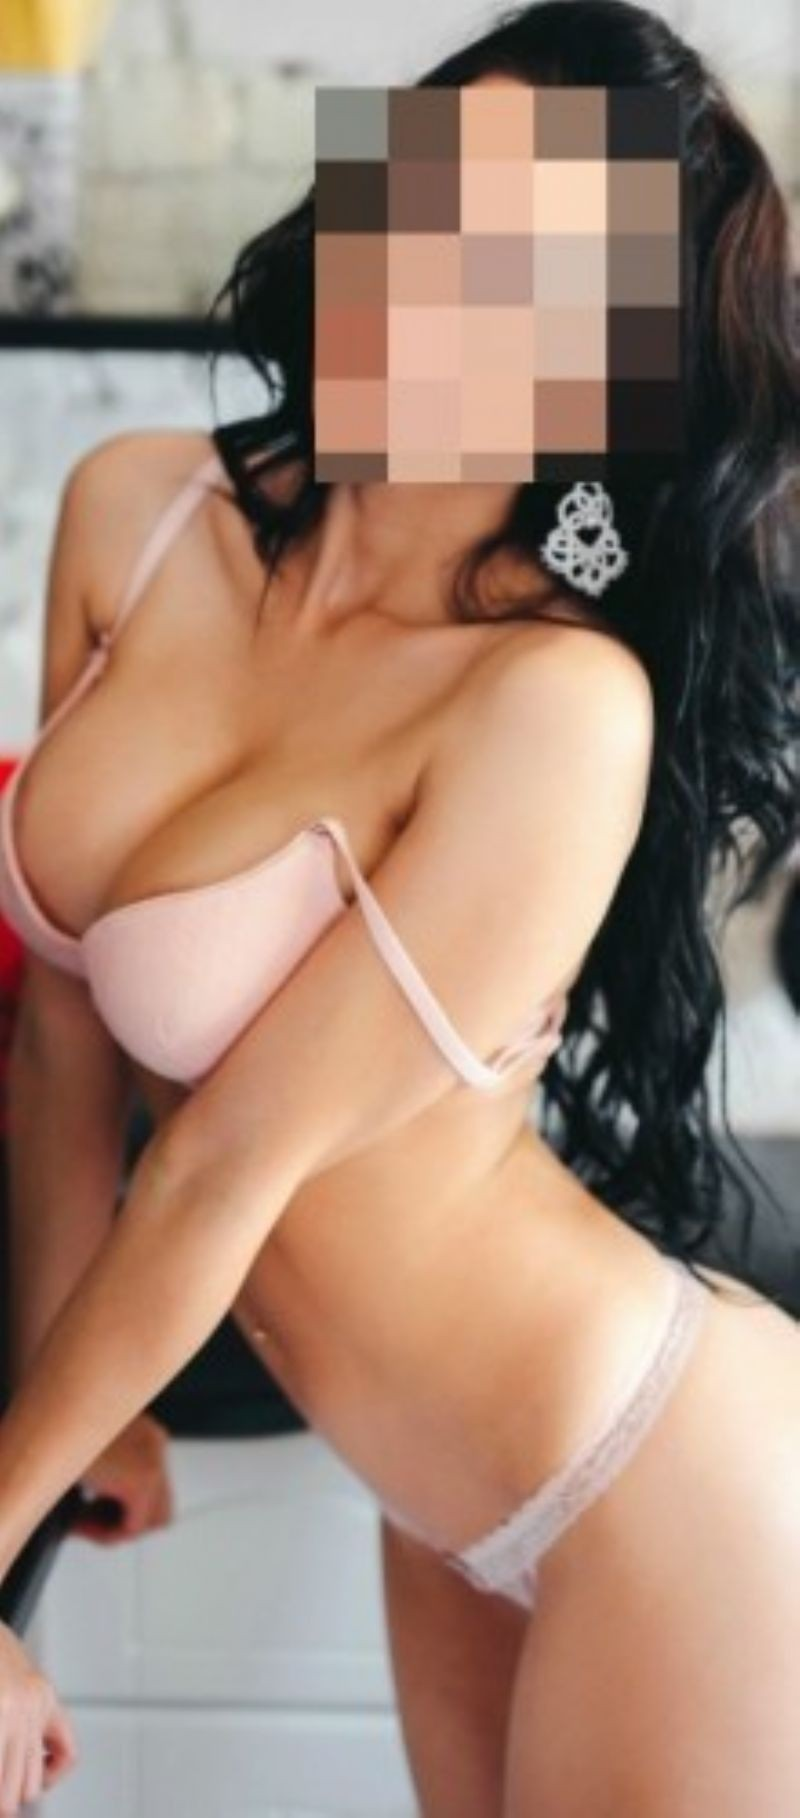 cheapest escorts looking for just sex Sydney